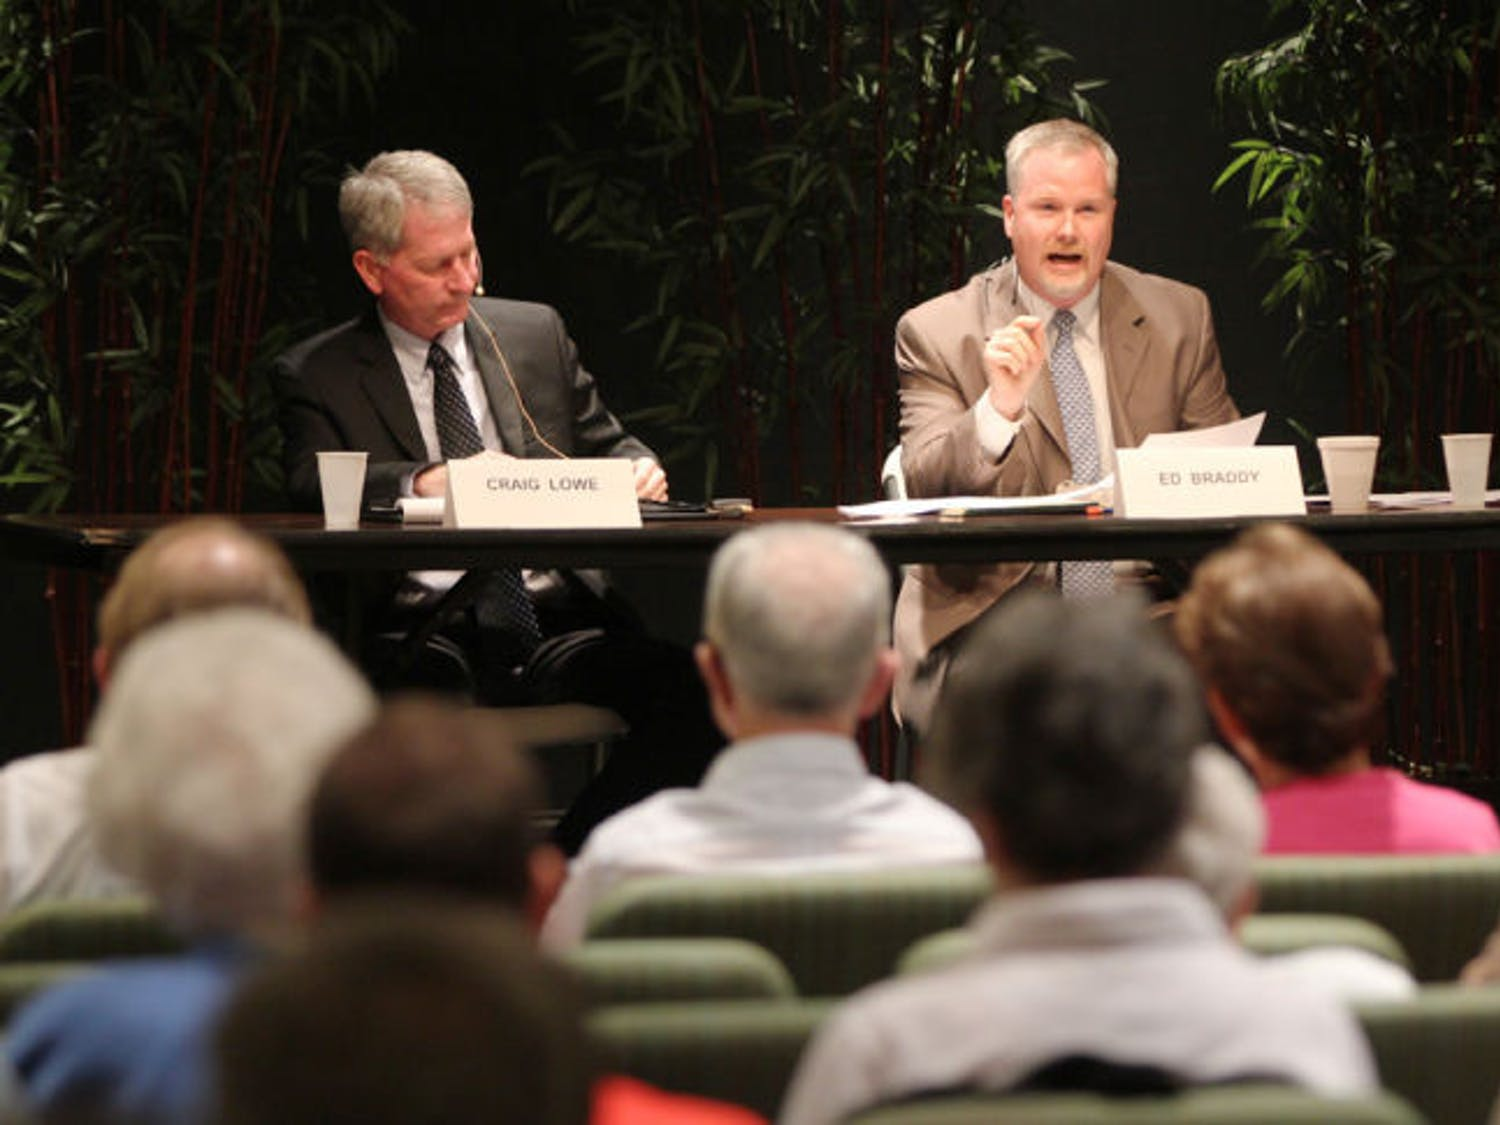 Mayor Craig Lowe and mayoral candidate Ed Braddy debate at Oak Hammock at UF retirement community Tuesday night. About 90 people attended.